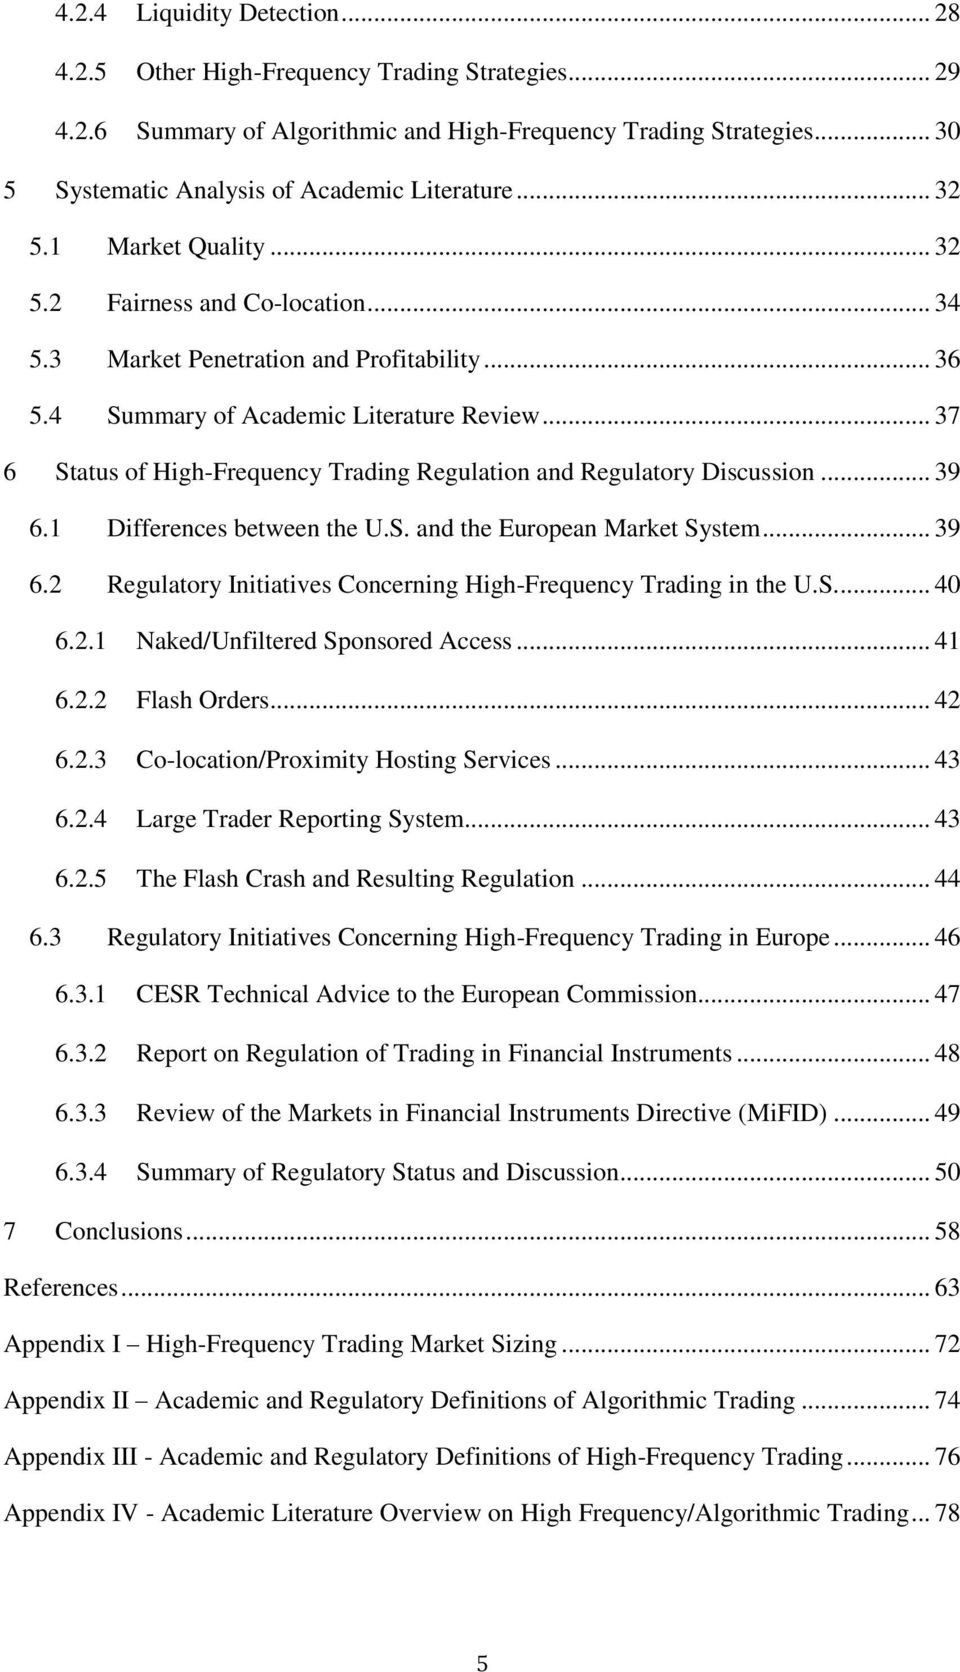 .. 37 6 Status of High-Frequency Trading Regulation and Regulatory Discussion... 39 6.1 Differences between the U.S. and the European Market System... 39 6.2 Regulatory Initiatives Concerning High-Frequency Trading in the U.